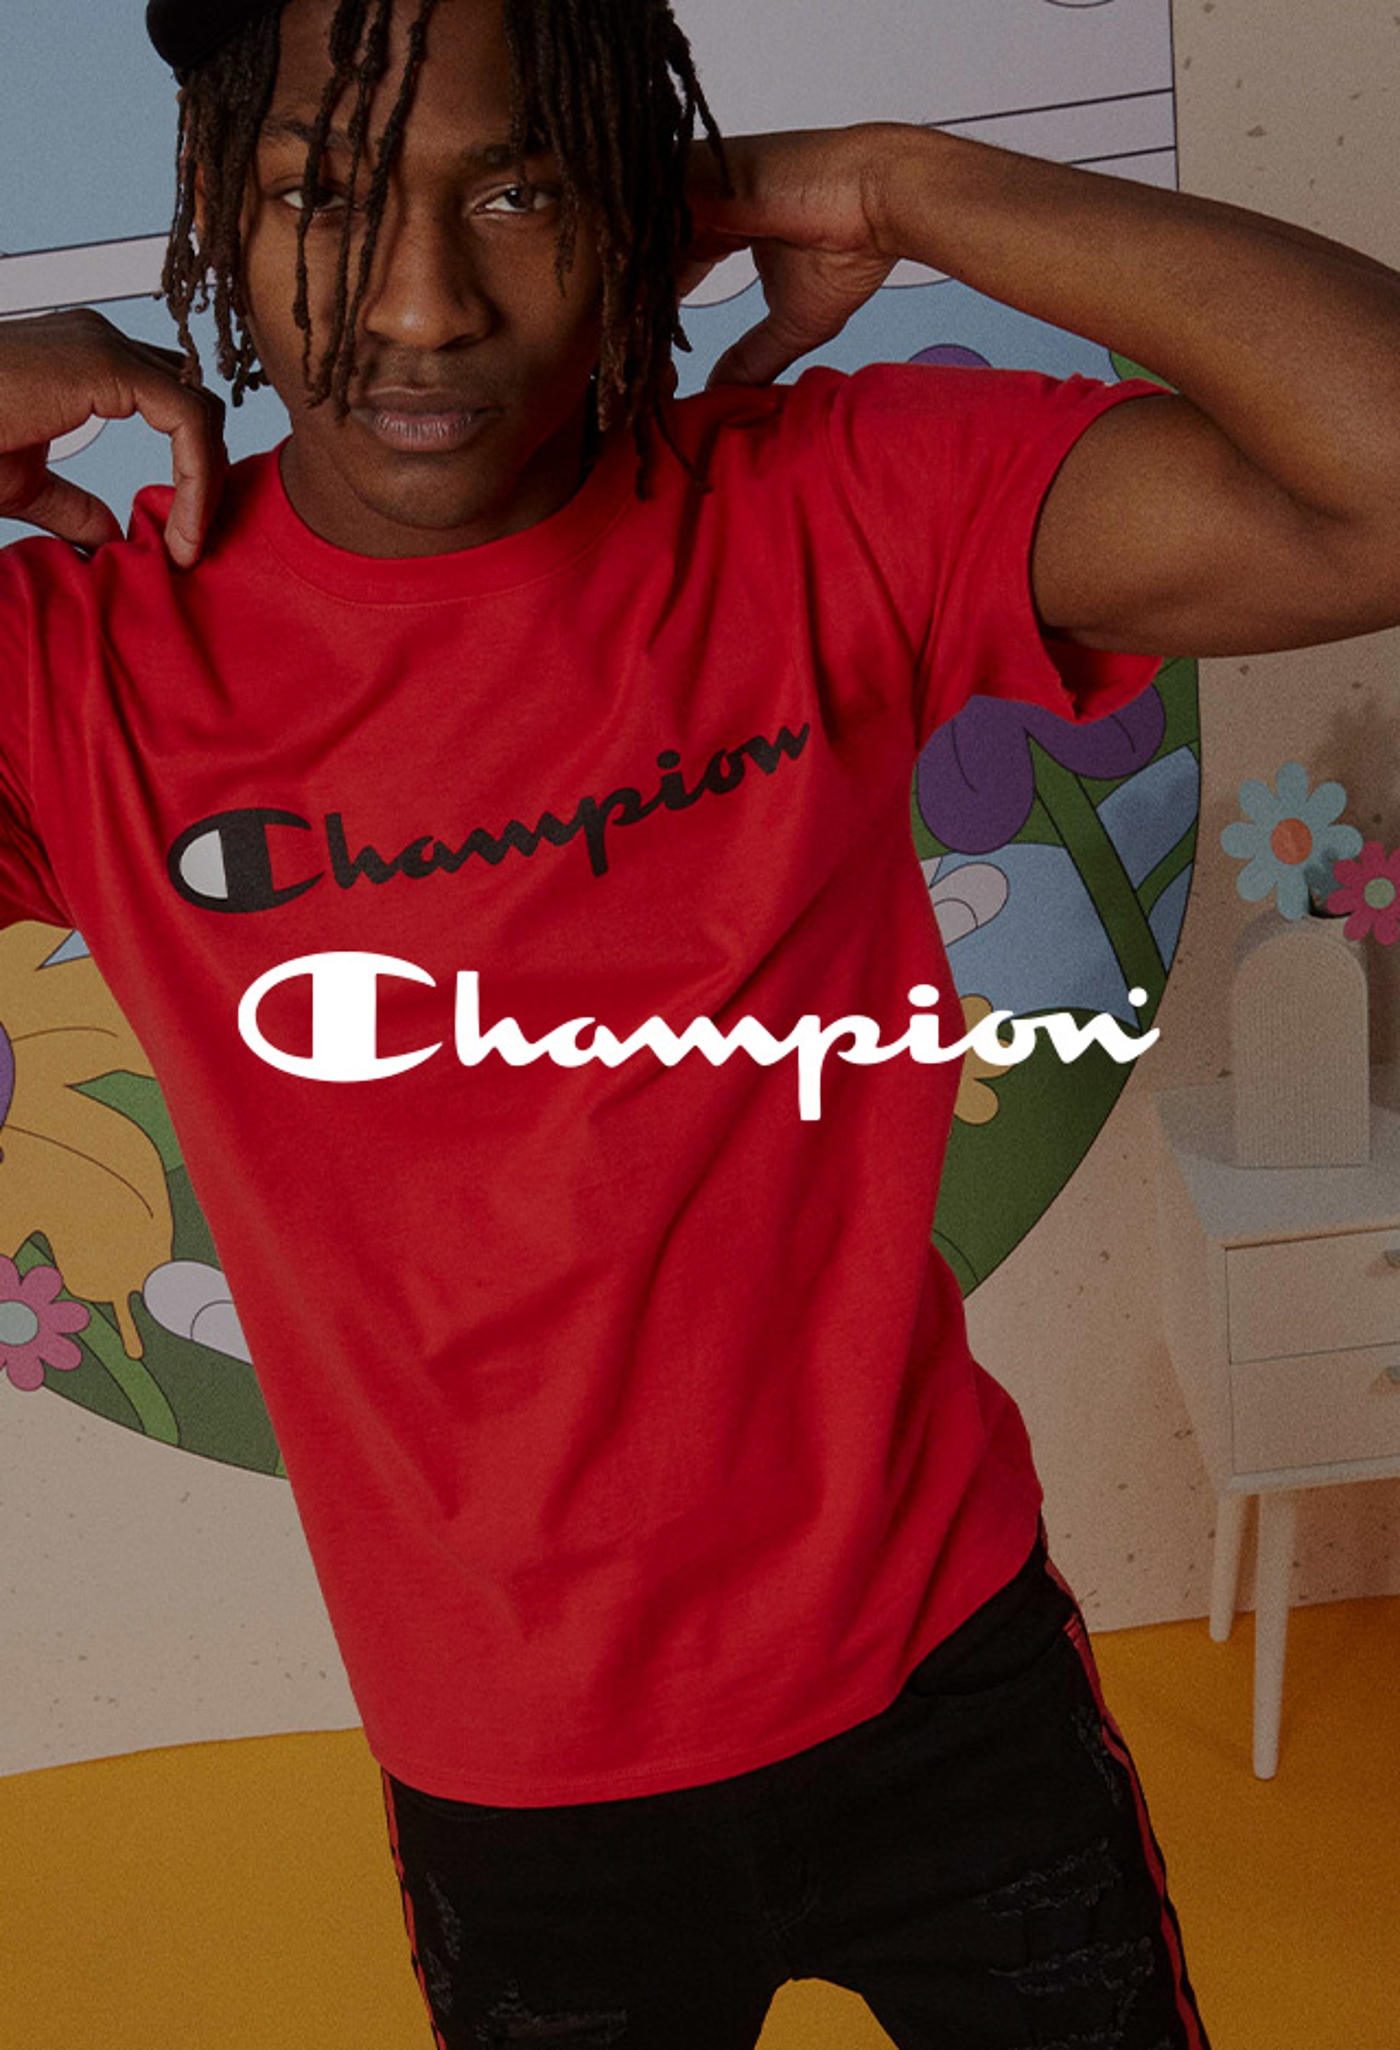 Clothing by Champion